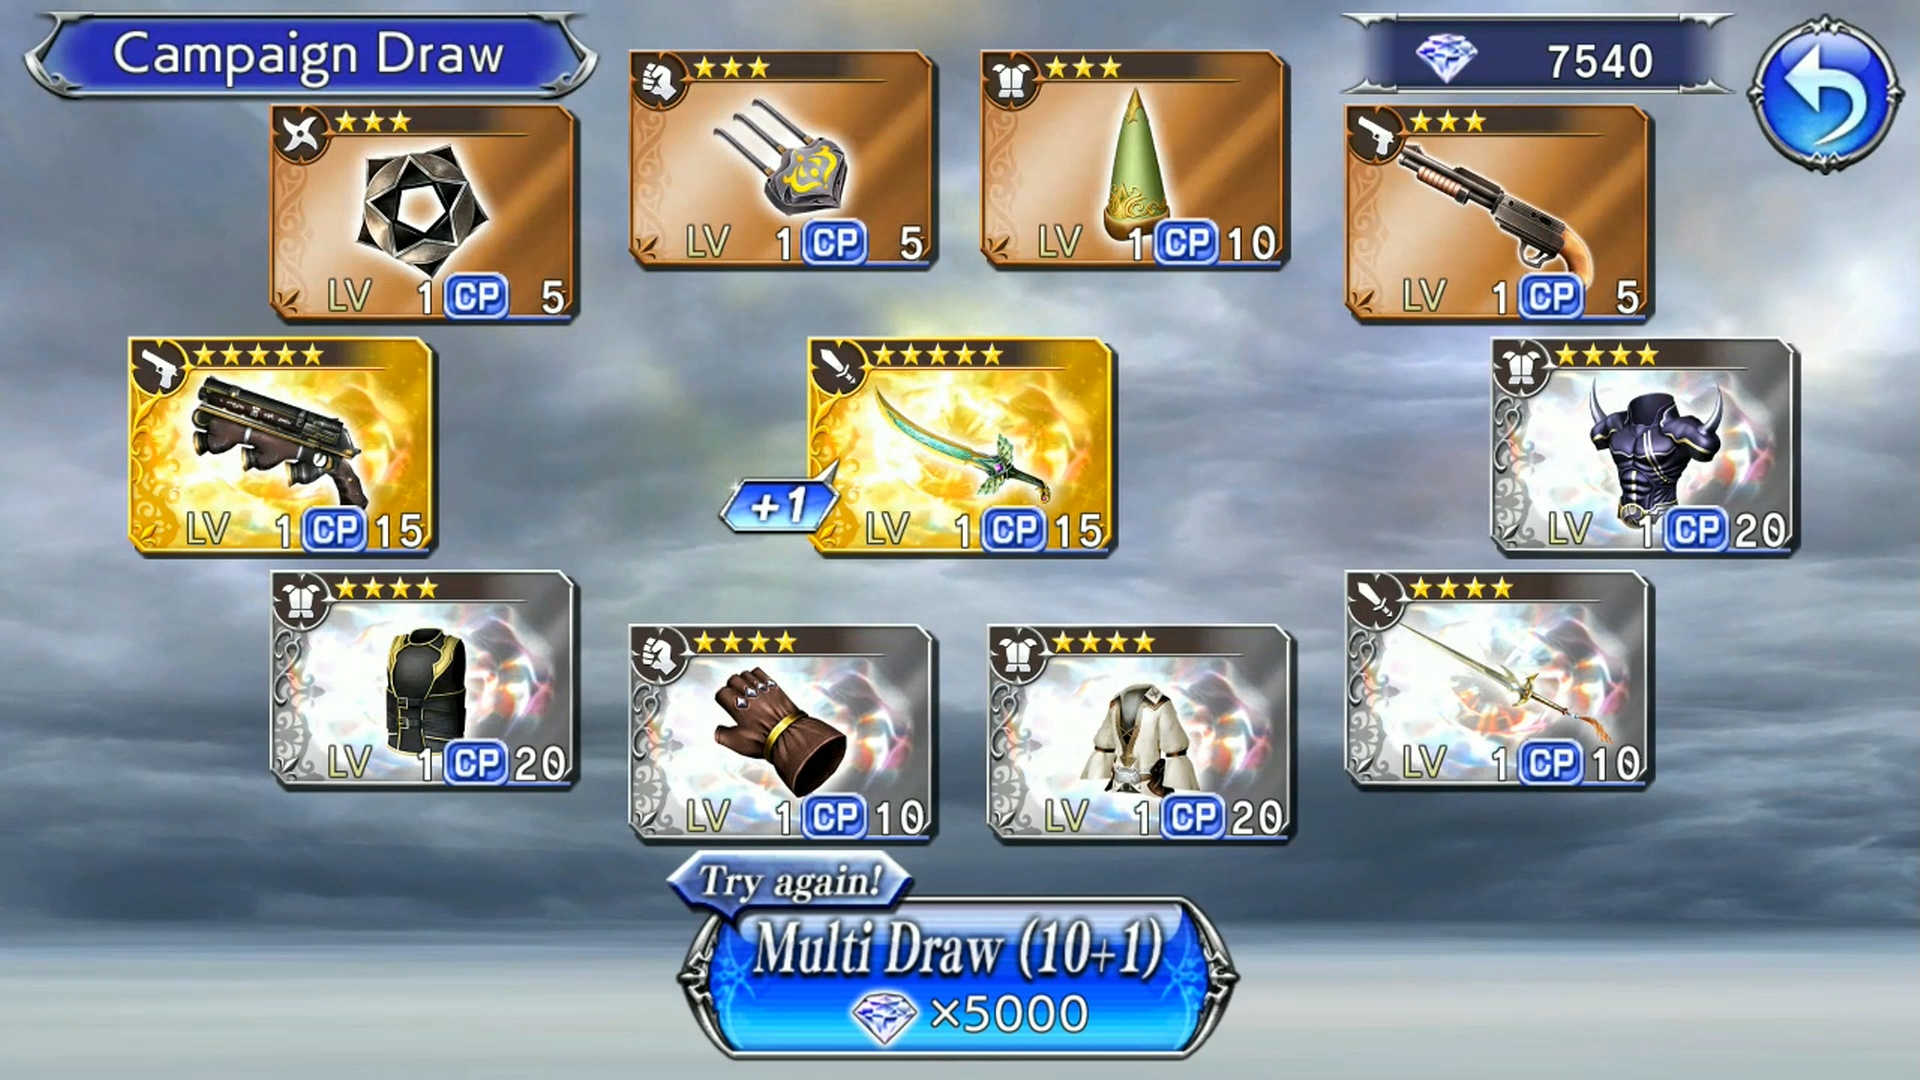 Dissidia Opera Omnia Guide: How to Reroll, Tier List